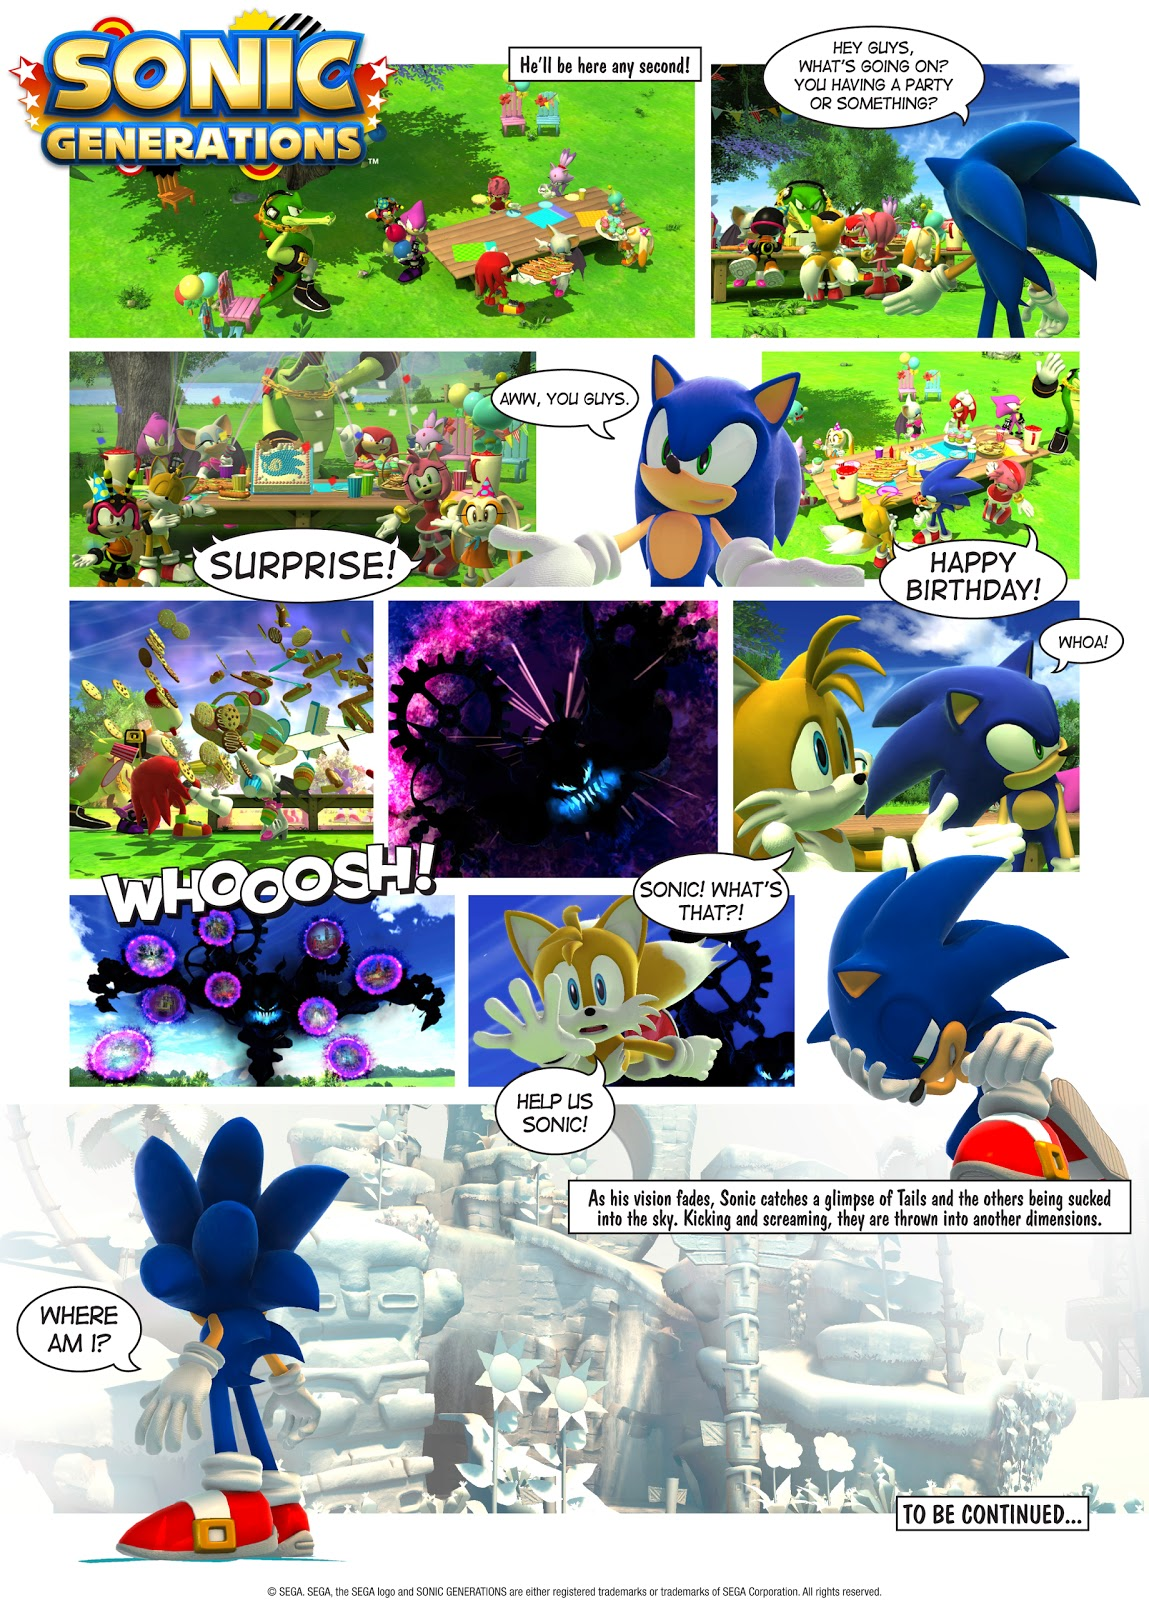 Video games: Celebrate 20 years of Sonic the Hedgehog with